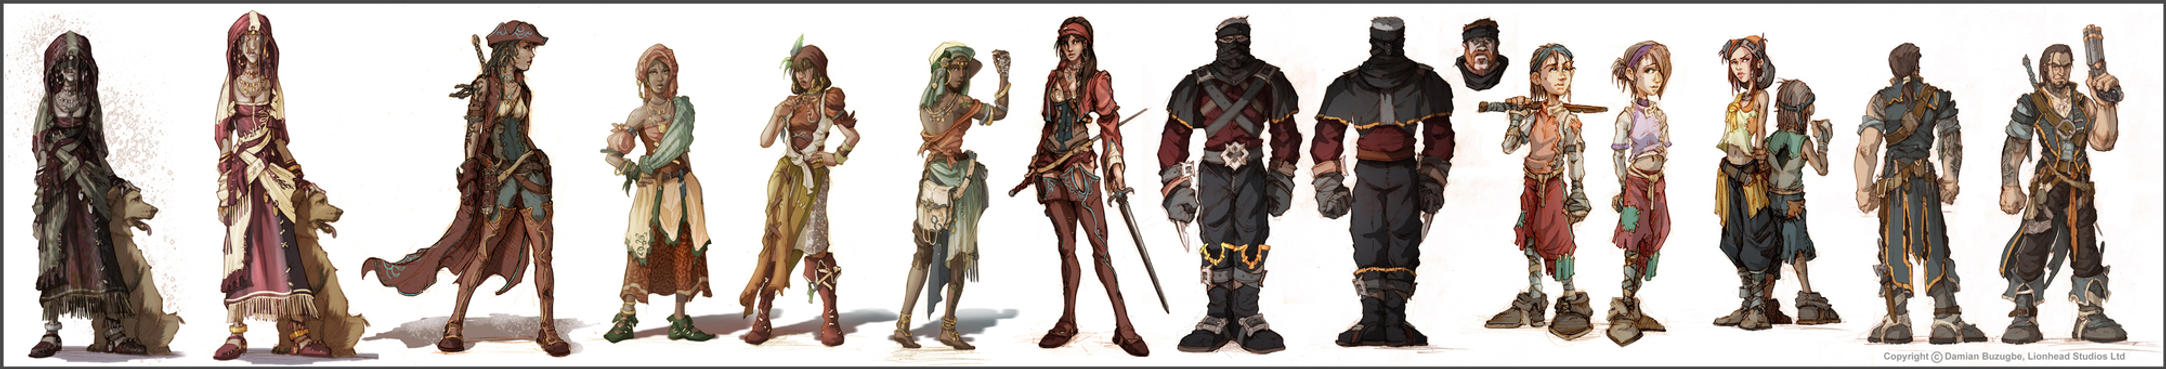 Fable 2 Colour concepts by OmenD4